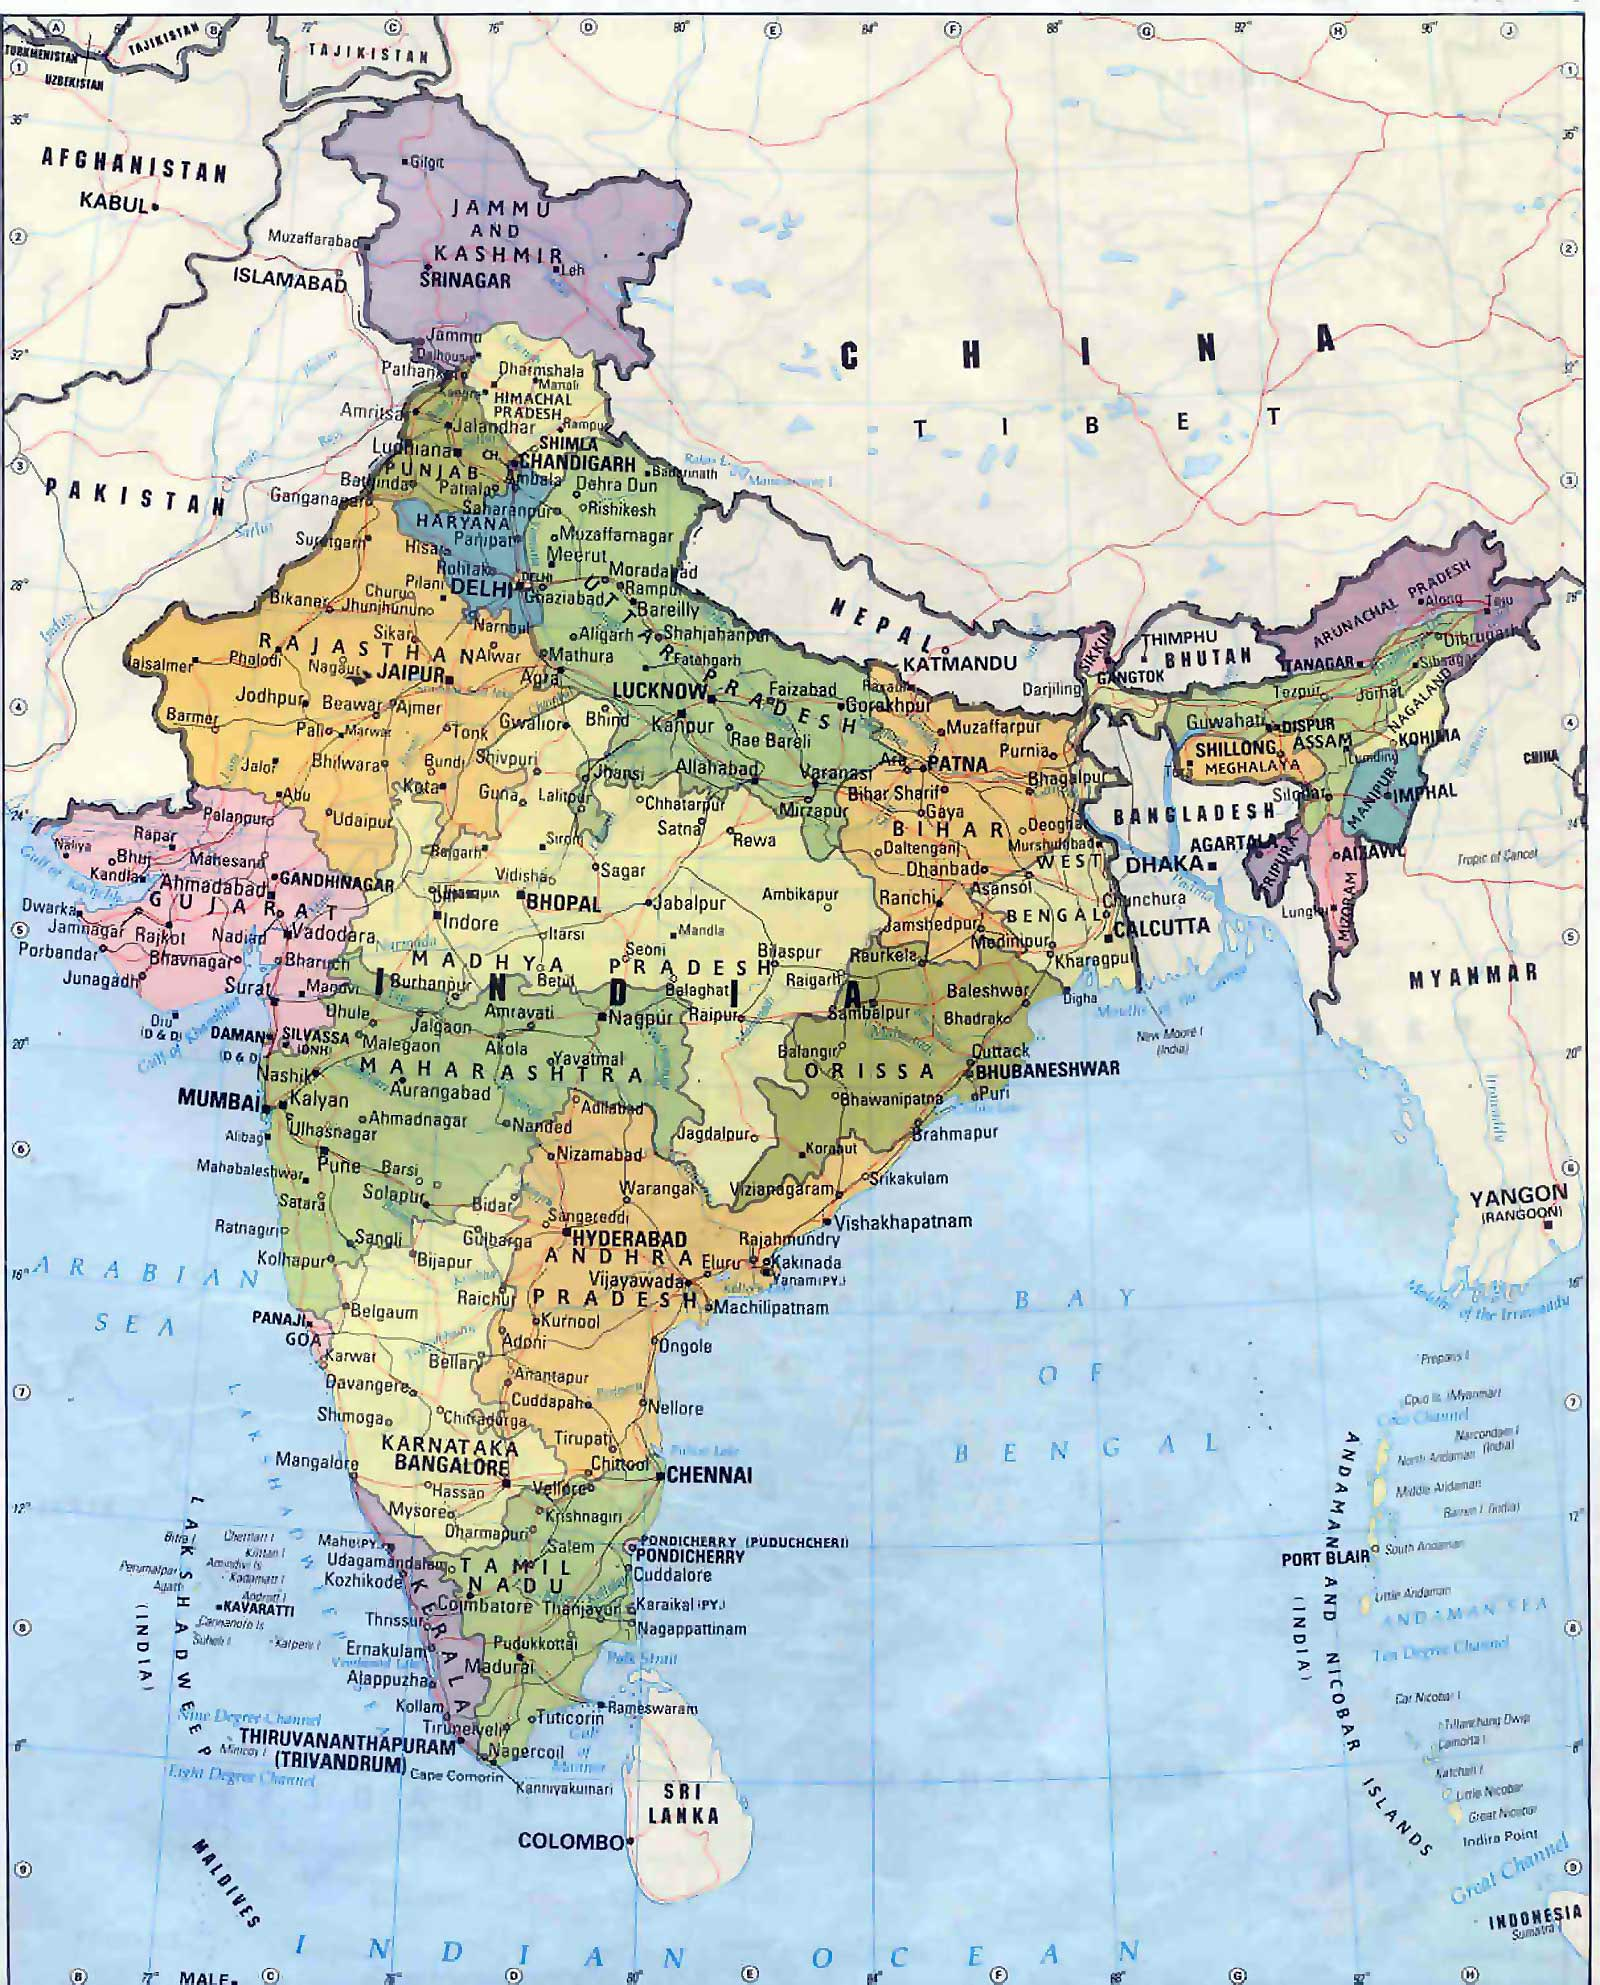 http://www.orangesmile.com/common/img_country_maps/india-map-0.jpg